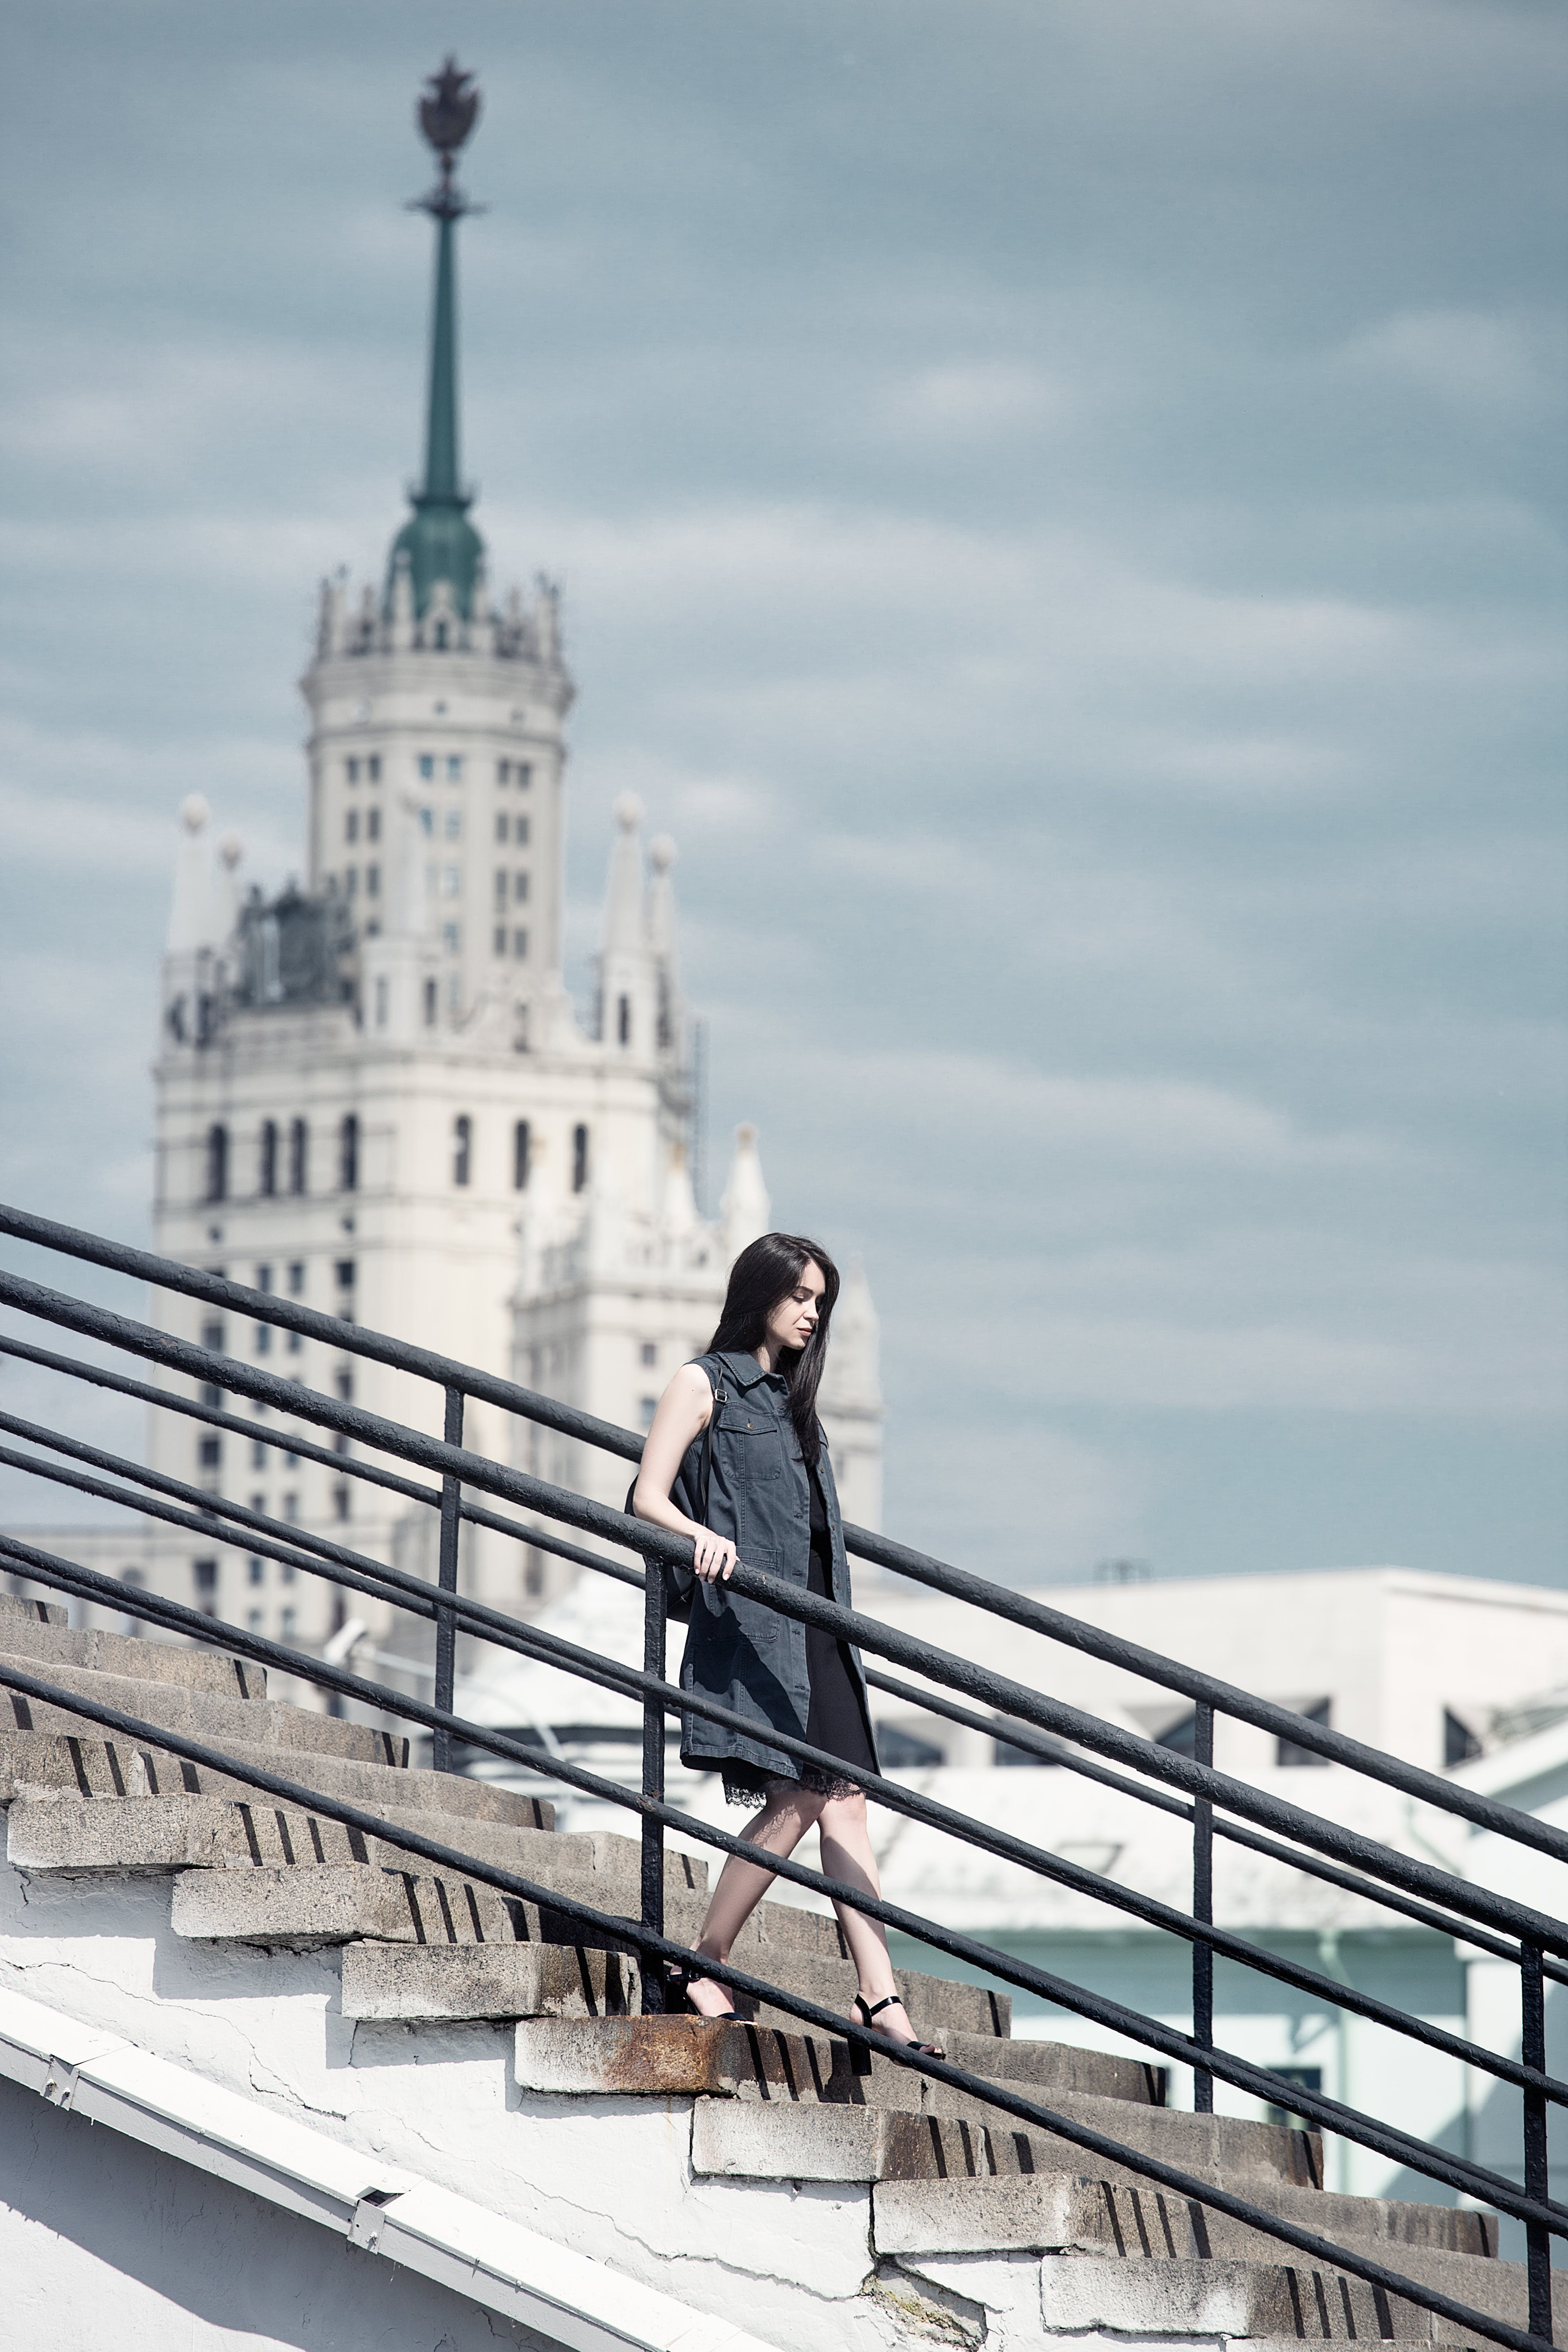 Free stock photo of stairs, city, sky, person